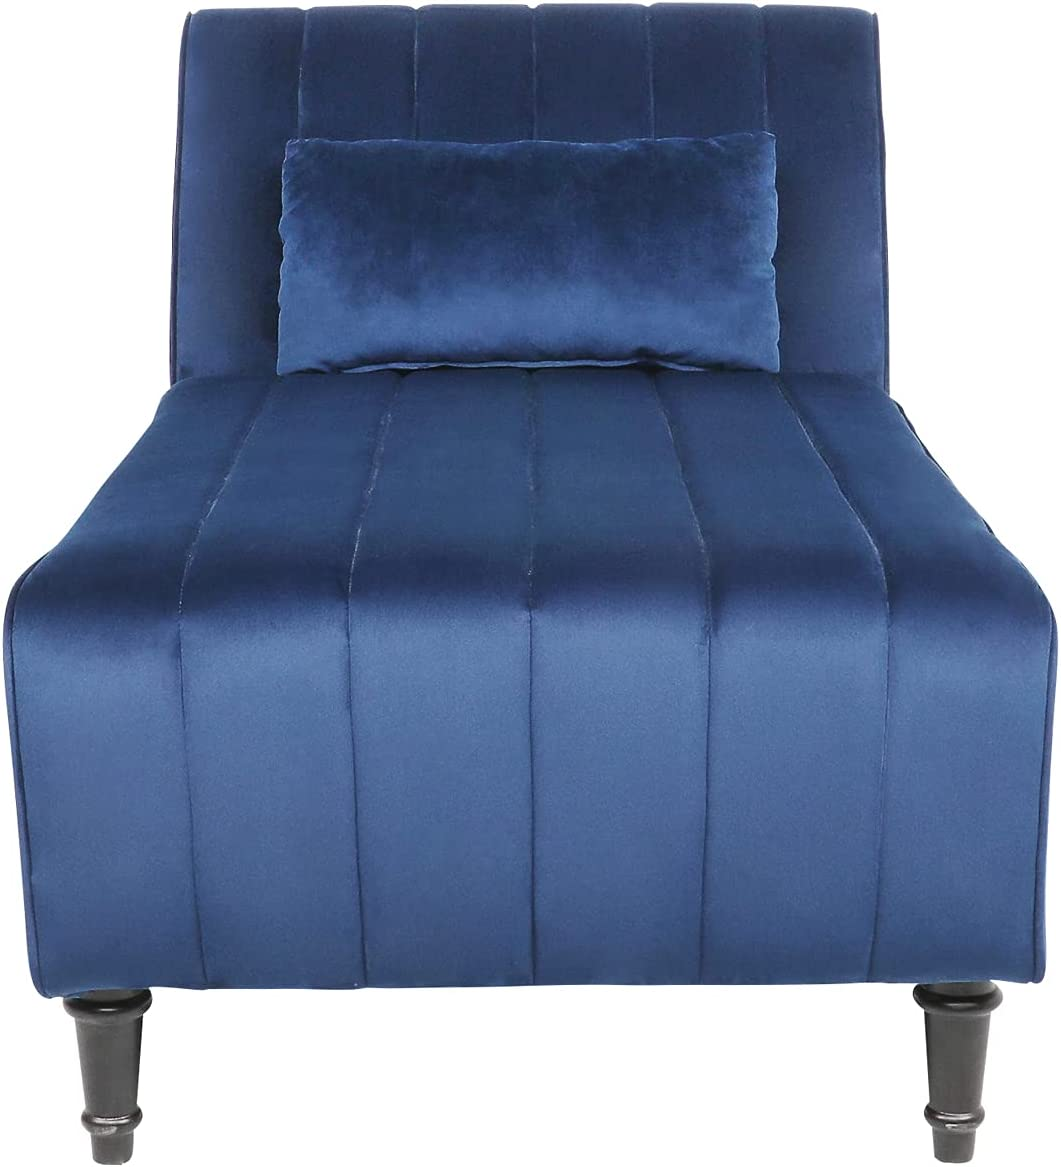 Modern Velvet Chaise Max 72% OFF Lounge Super sale period limited with Backrest Ultra Soft Pad